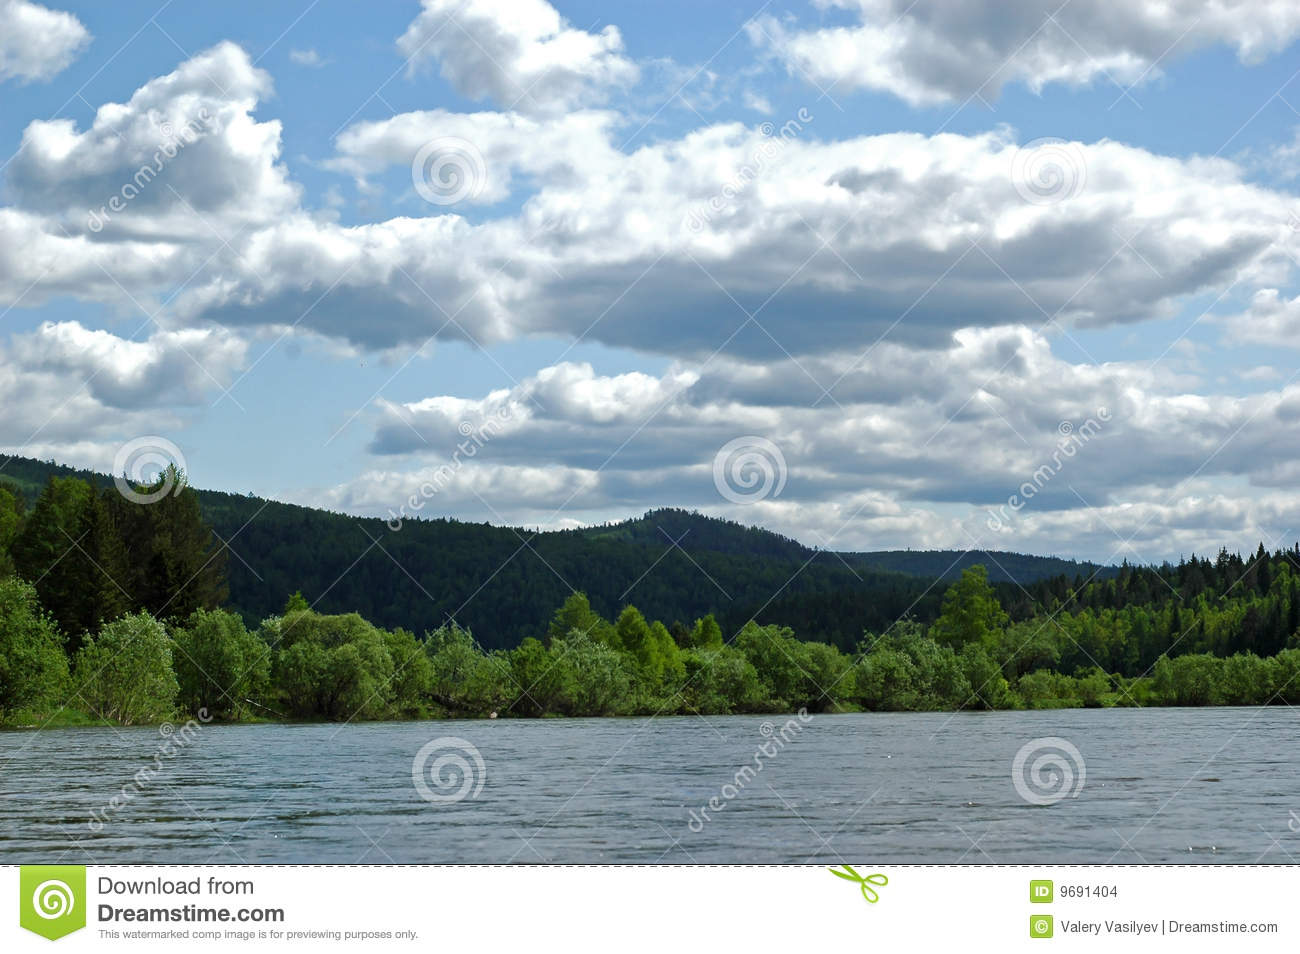 The Siberian mountain river Mana